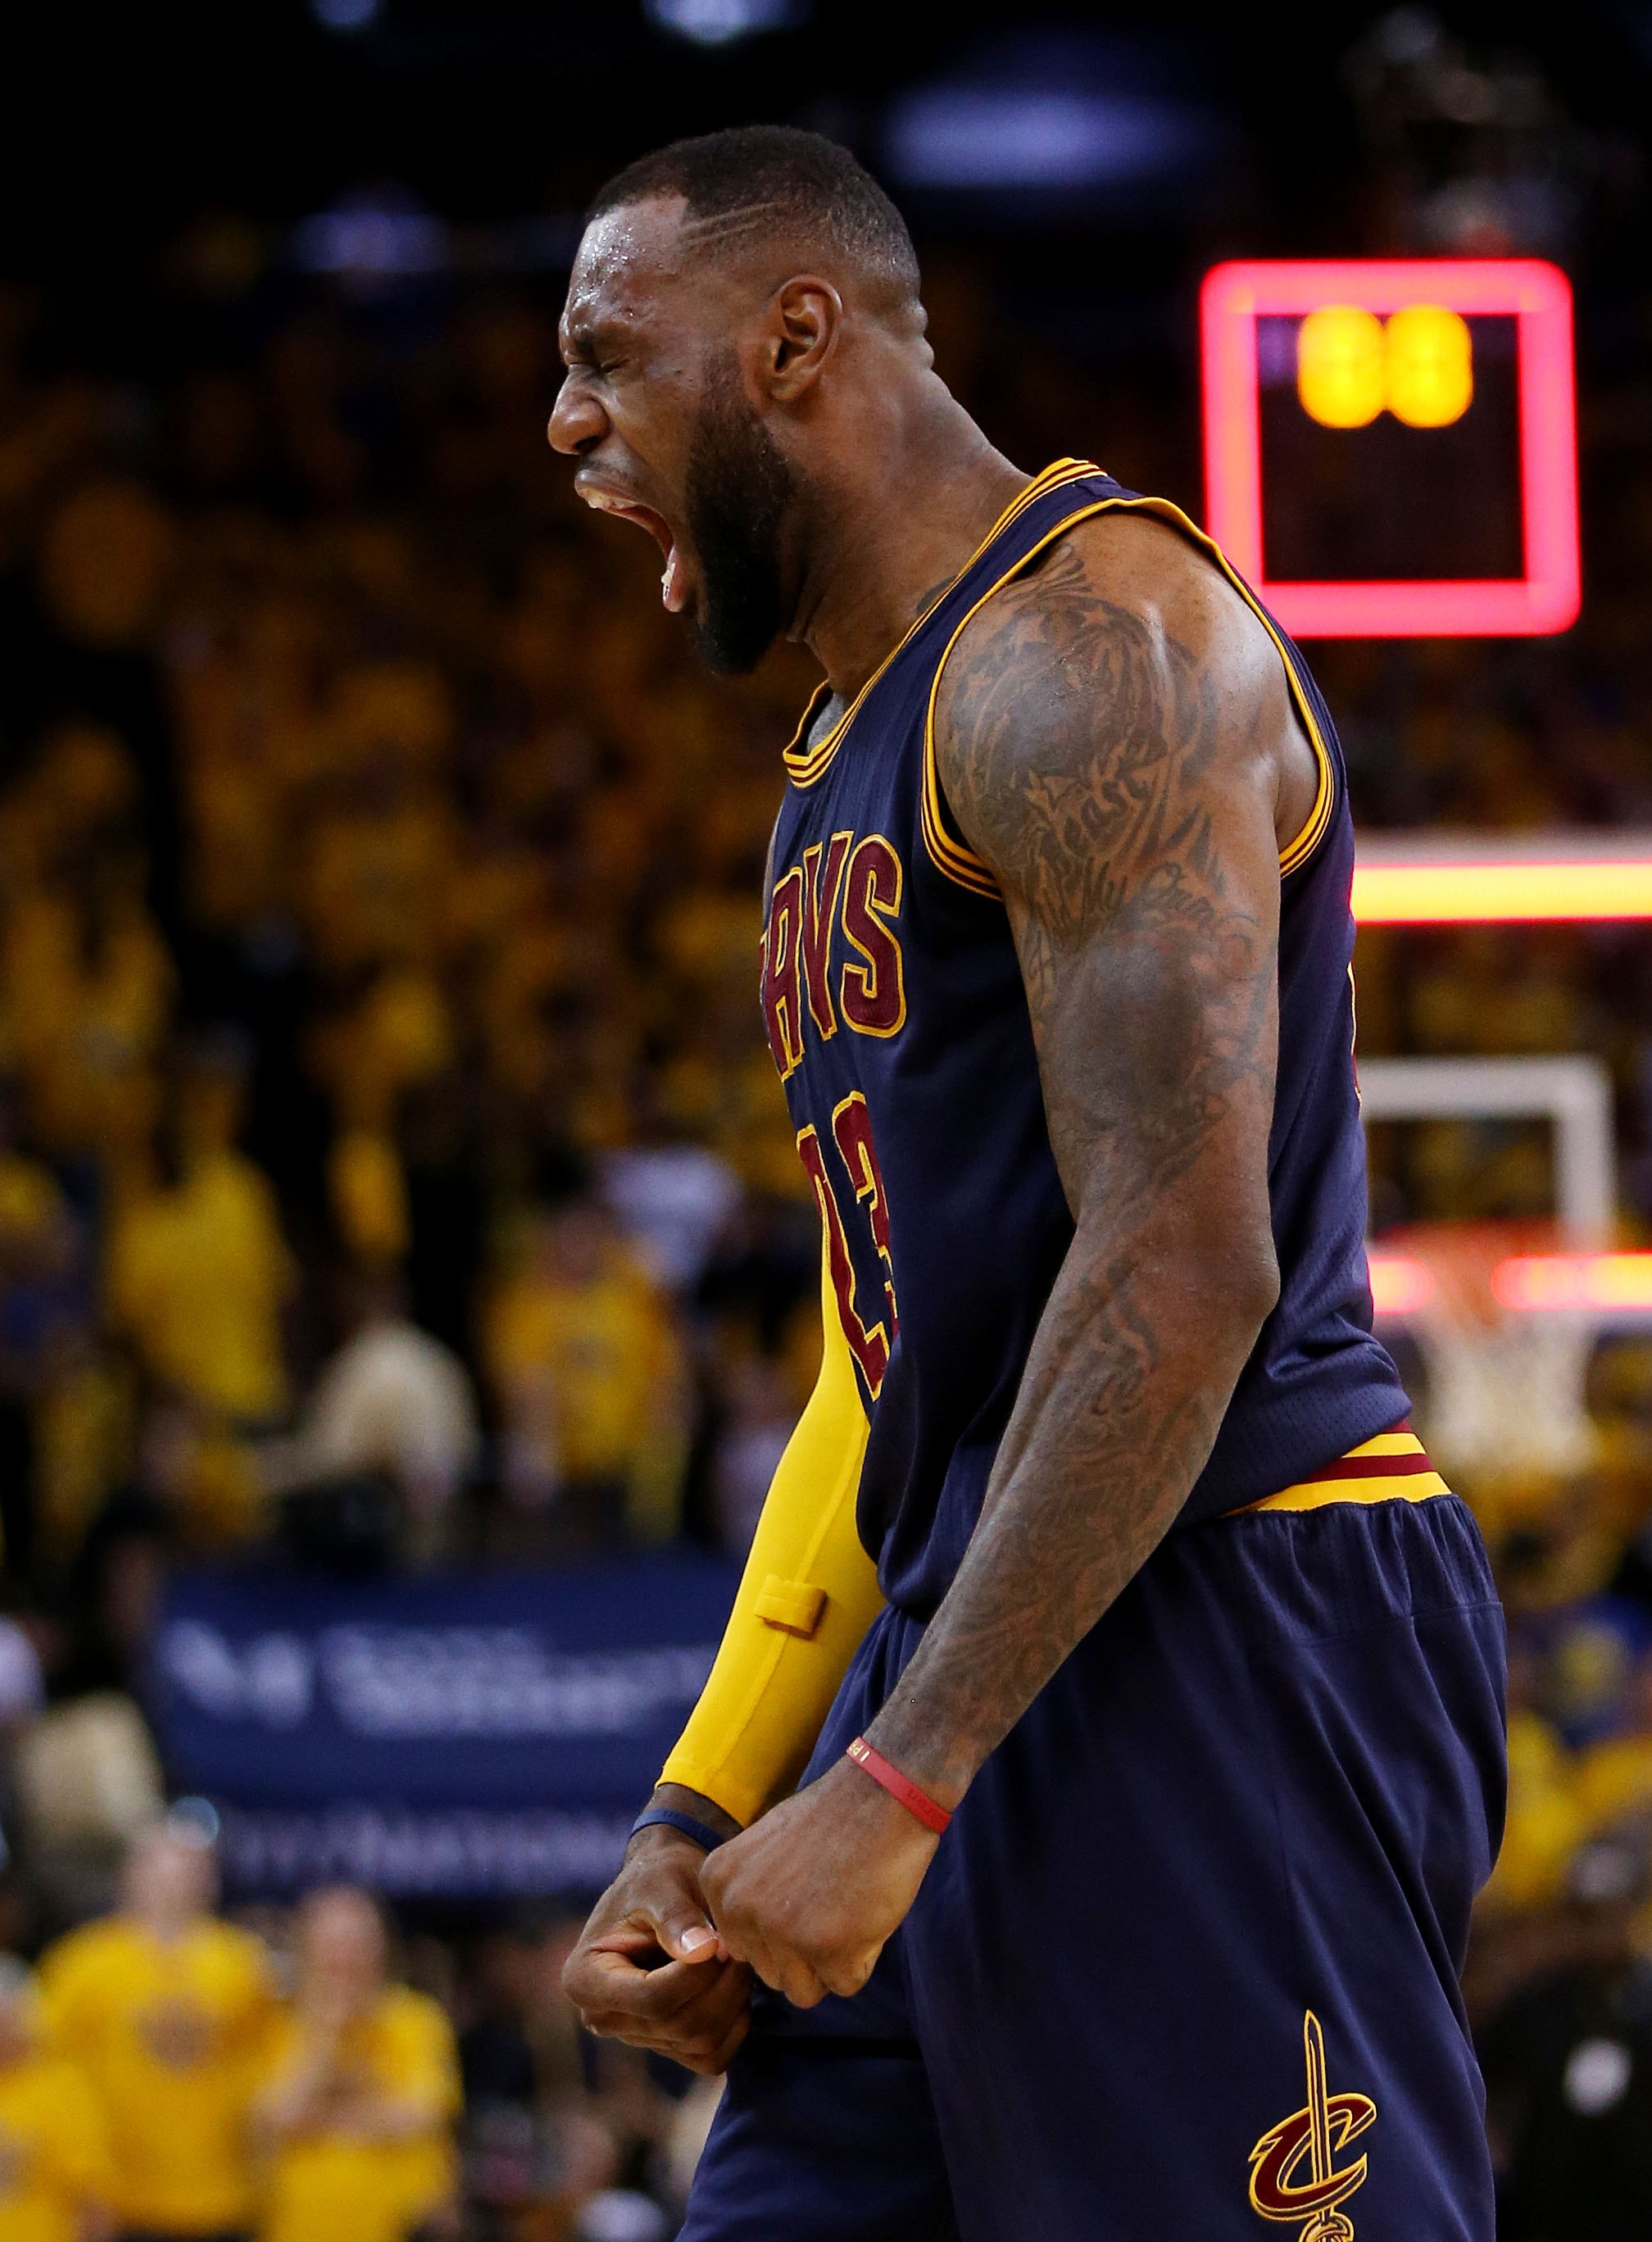 LeBron James of the Cavaliers celebrates his team's victory over the Warriors on Sunday night. The win evened the best-of-seven series at a game each.